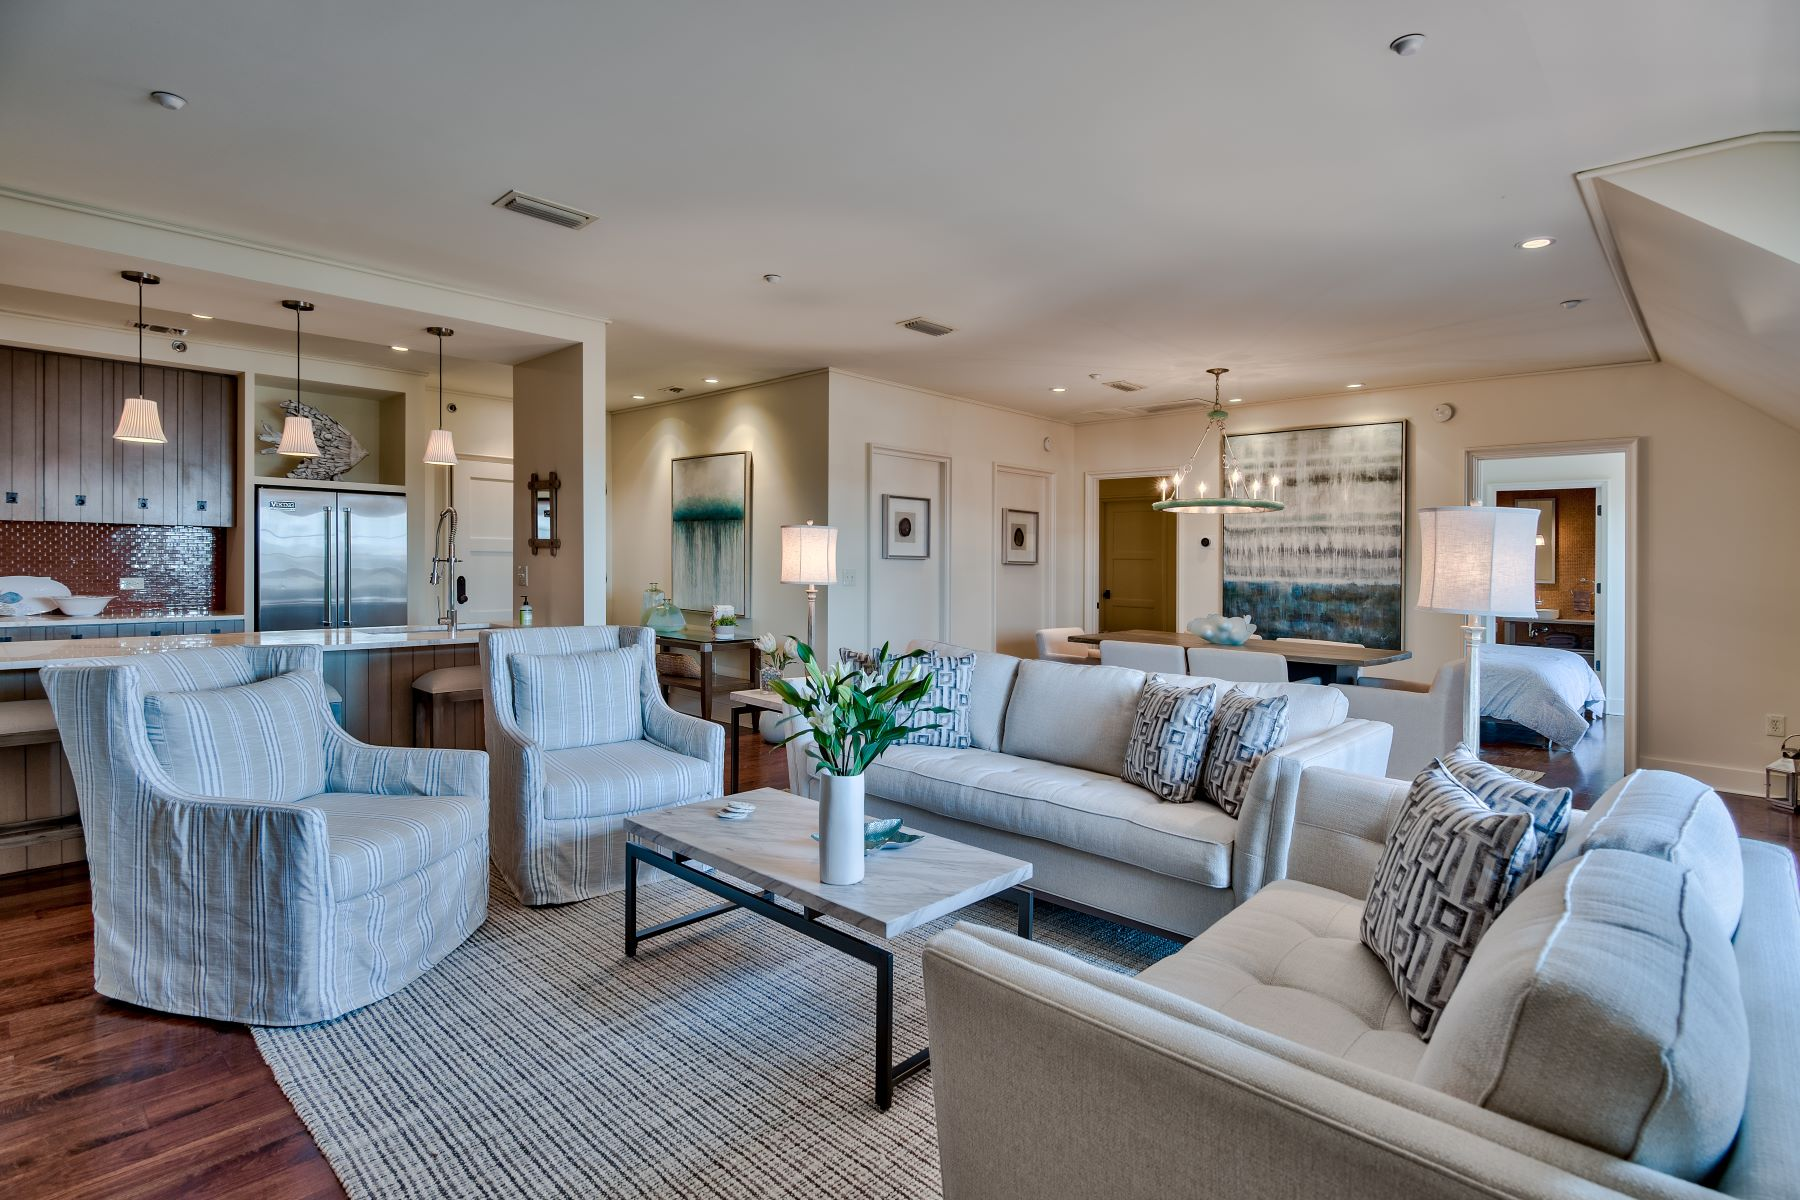 Condominiums for Sale at Charming Condo in the Heart of Rosemary Beach 78 North Barrett Square 11 Rosemary Beach, Florida 32461 United States